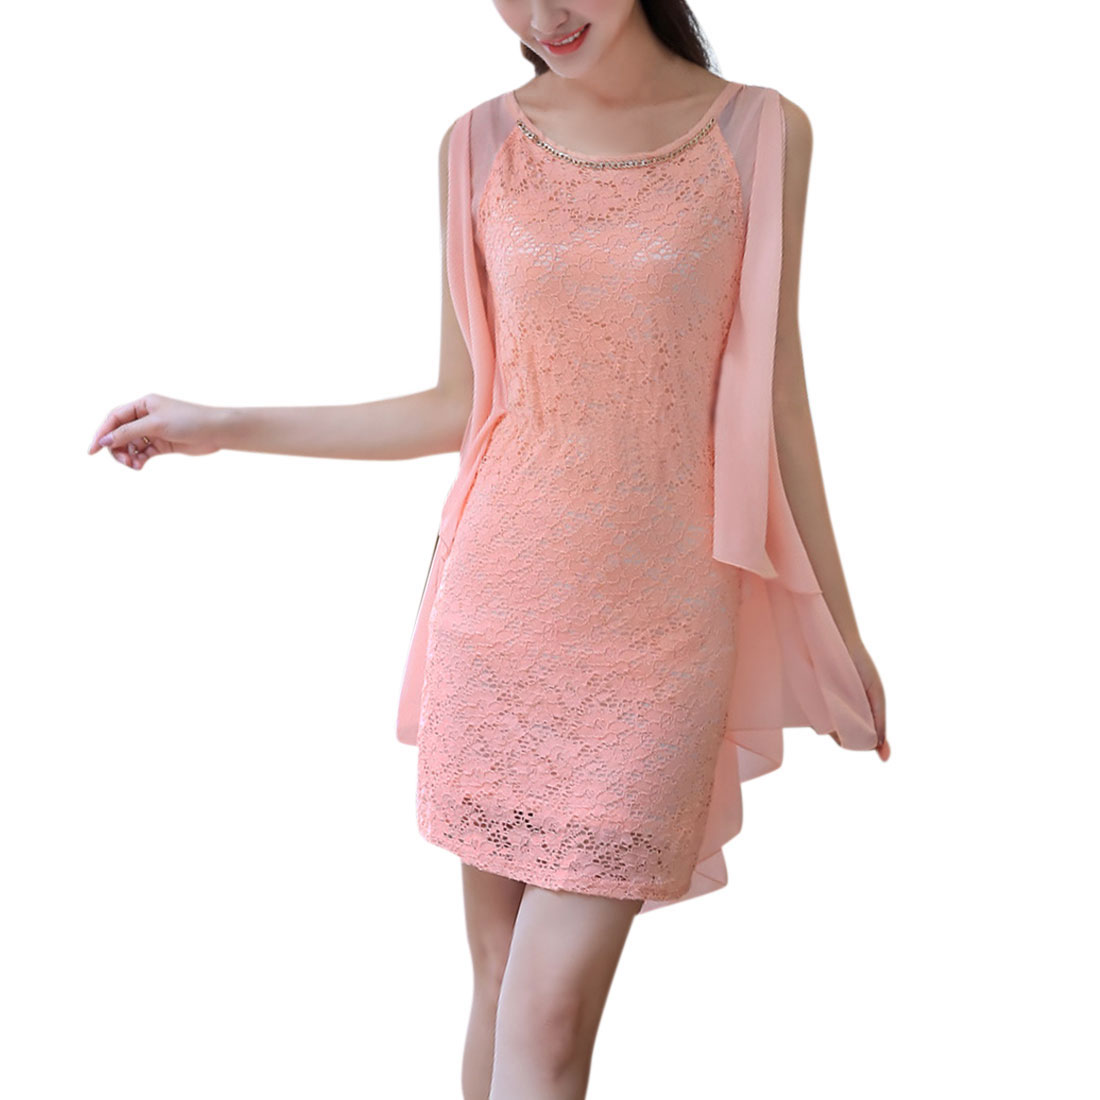 Ladies Round Neck Lace Panel Straight Sexy Chic Dress Pink XS